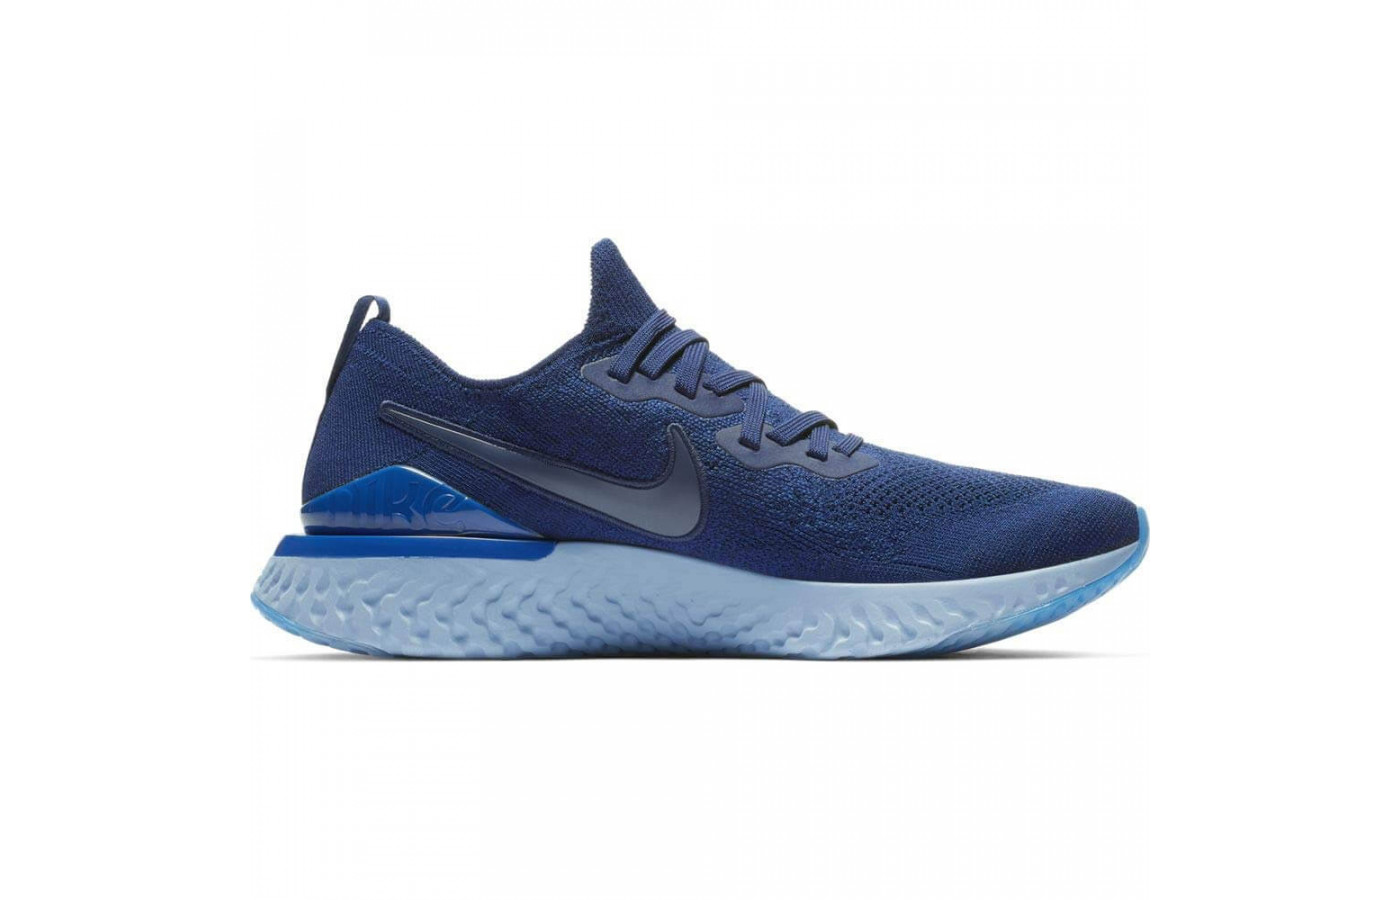 8f4d2b39e5f16 Nike Epic React Flyknit 2 - To Buy or Not in May 2019